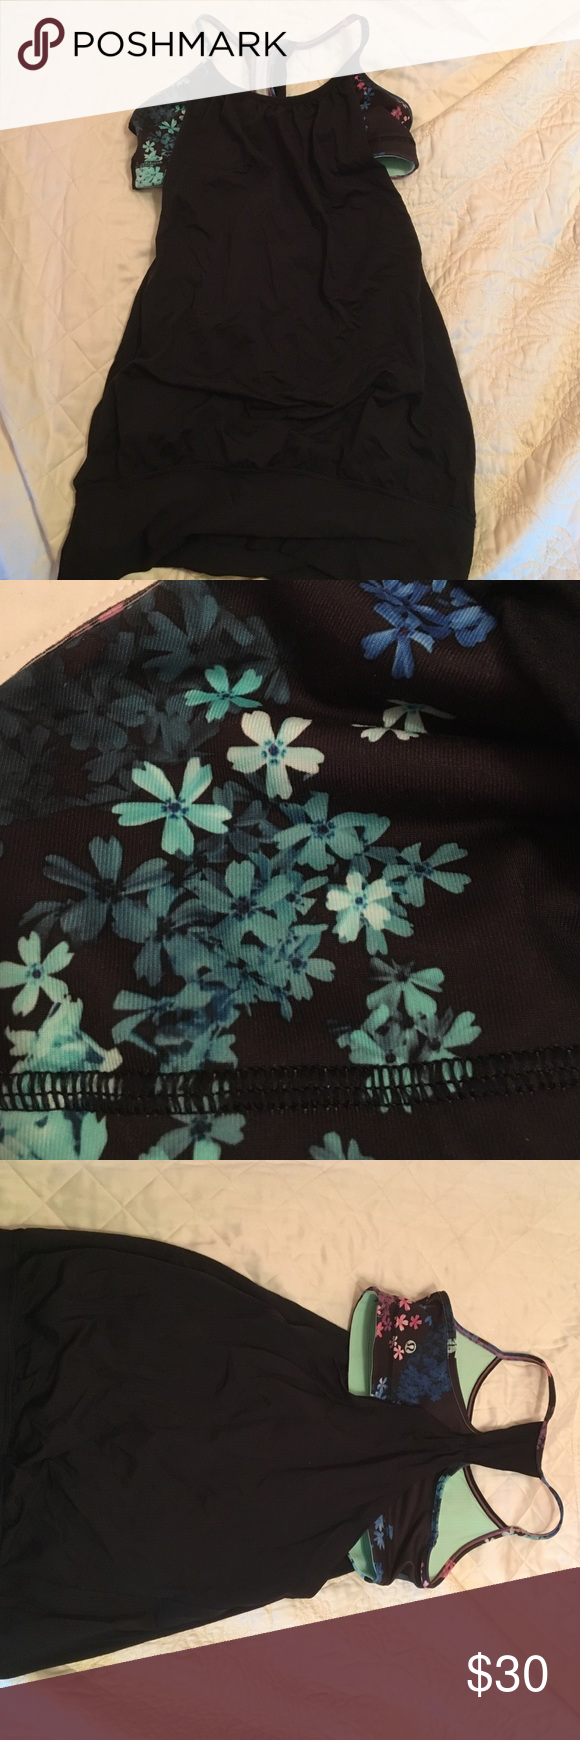 Black Lululemon tank with built in bra Black Lululemon tank with floral bra size 4 work only a few times I just grew out of it!! In great condition lululemon athletica Tops Tank Tops